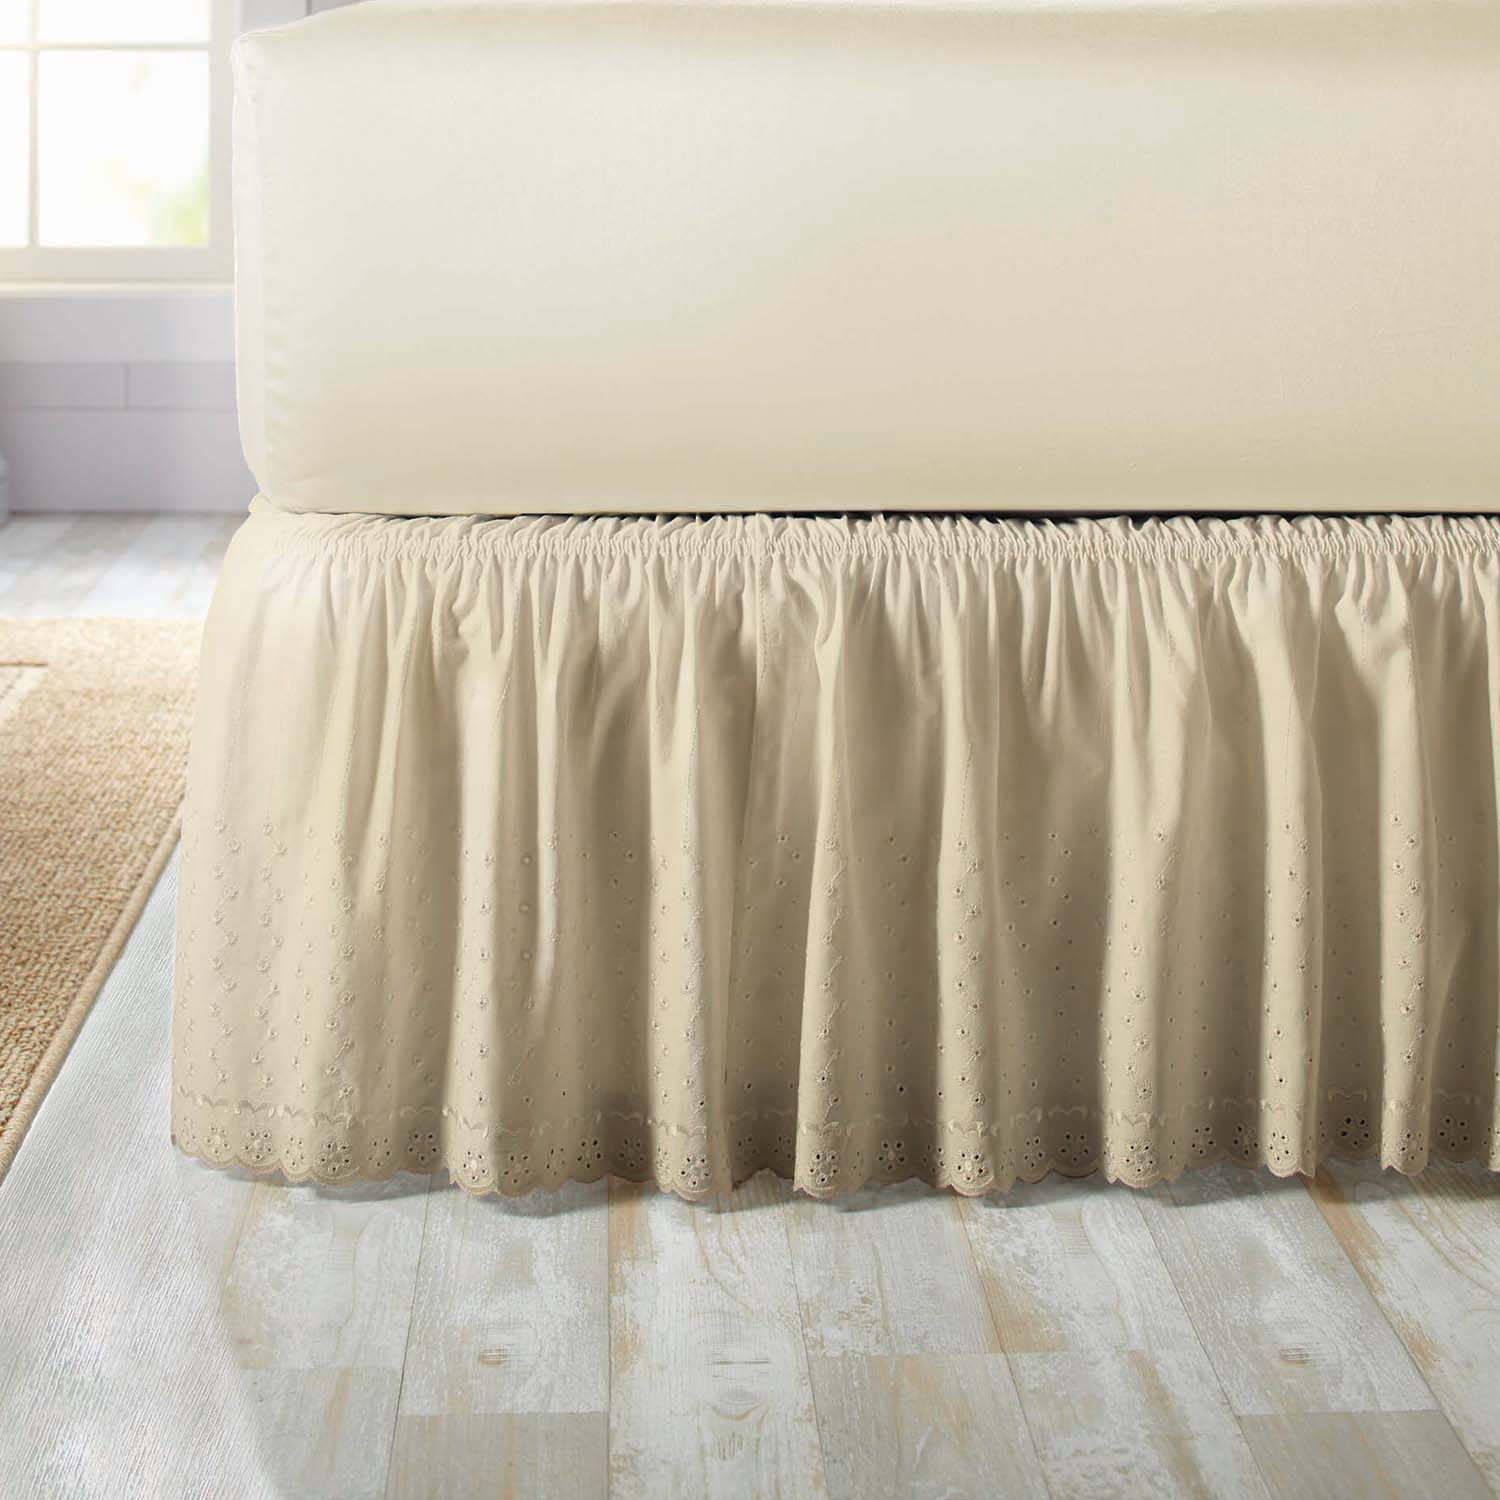 Better Homes and Gardens Eyelet Adjustable Bedskirt